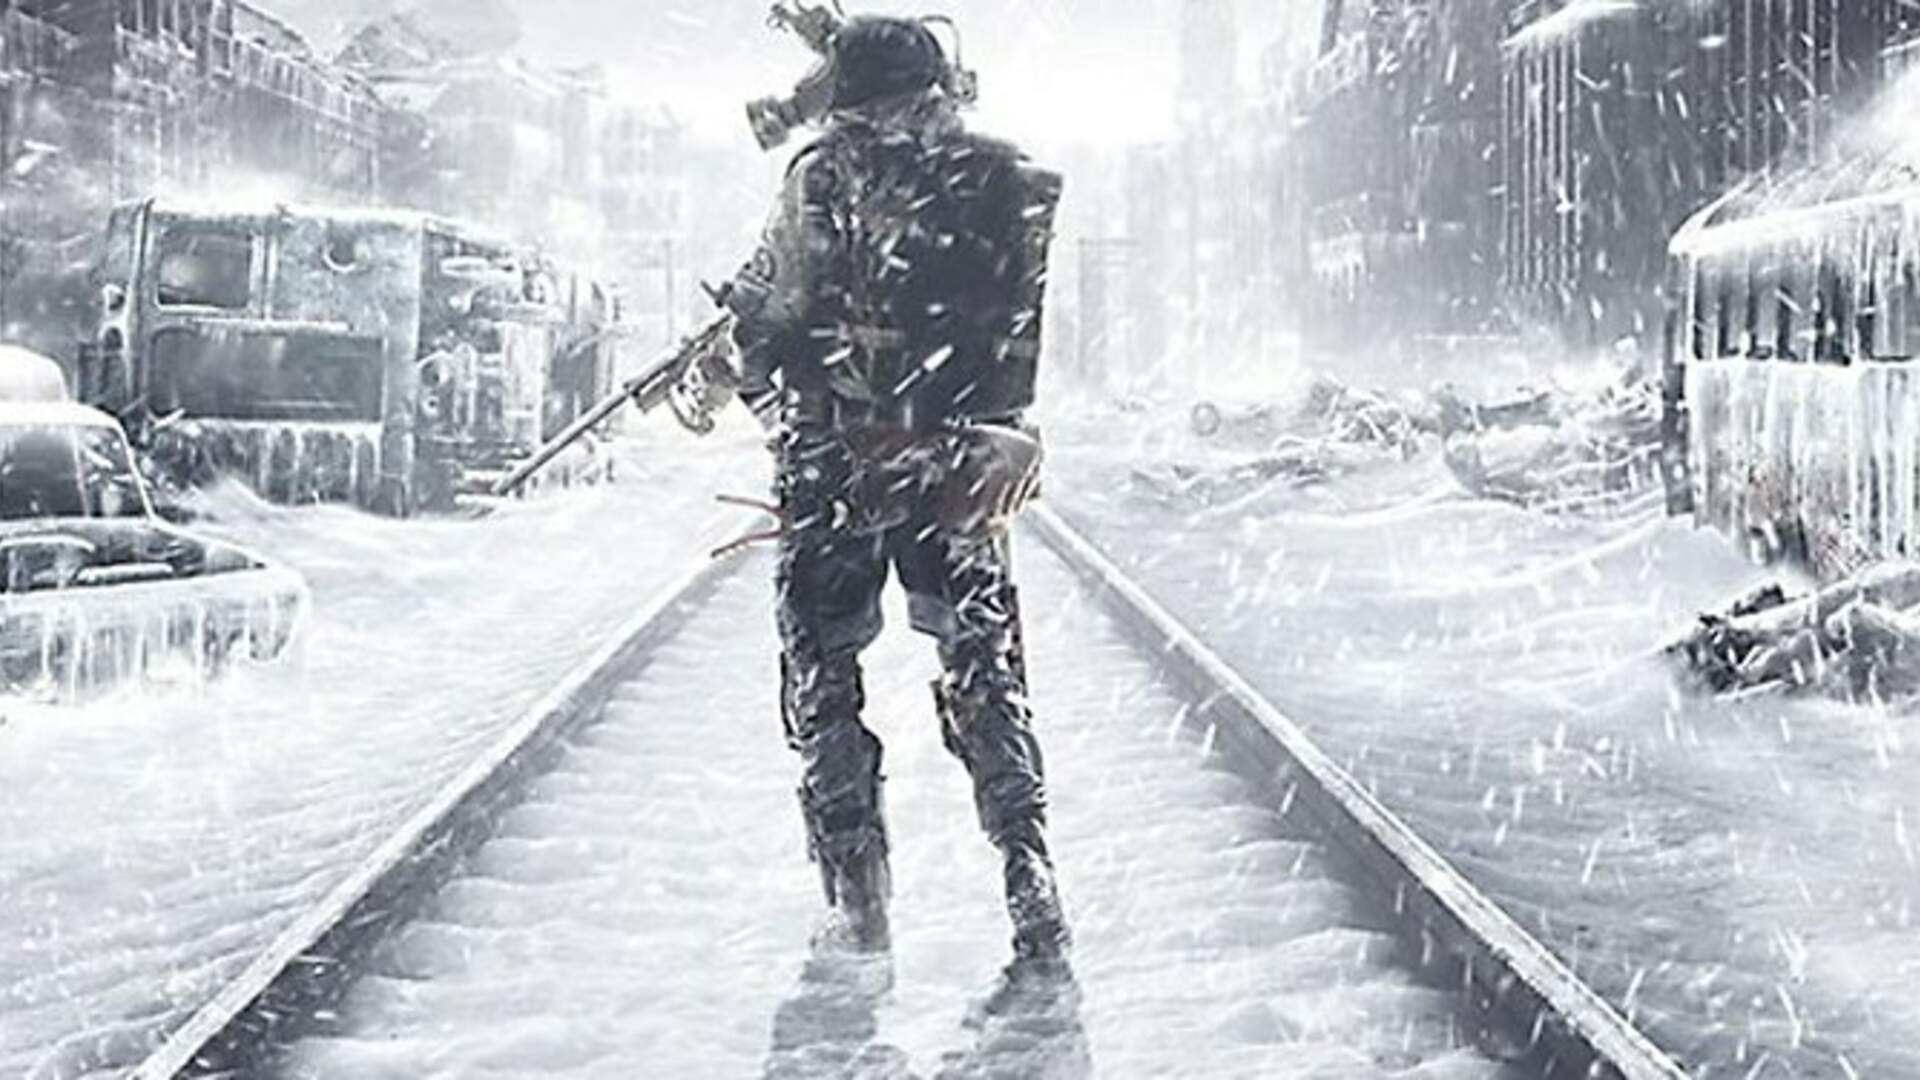 Metro 2033 Author Takes Movie Rights Back Citing Major Creative Differences